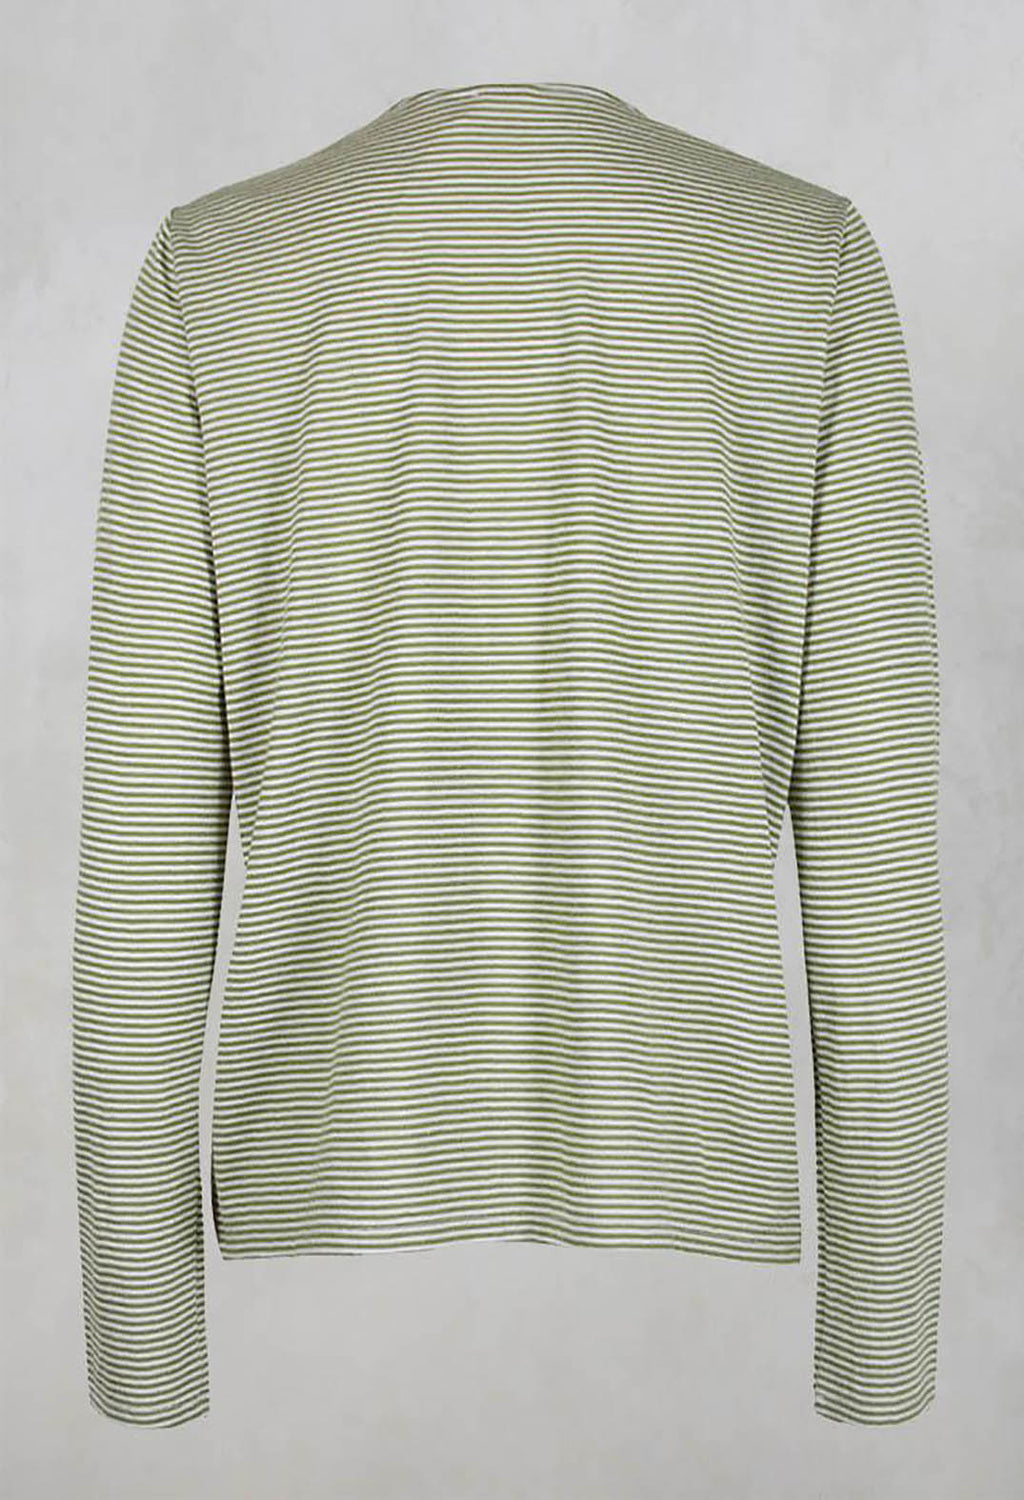 Striped Top in Canapa Verde